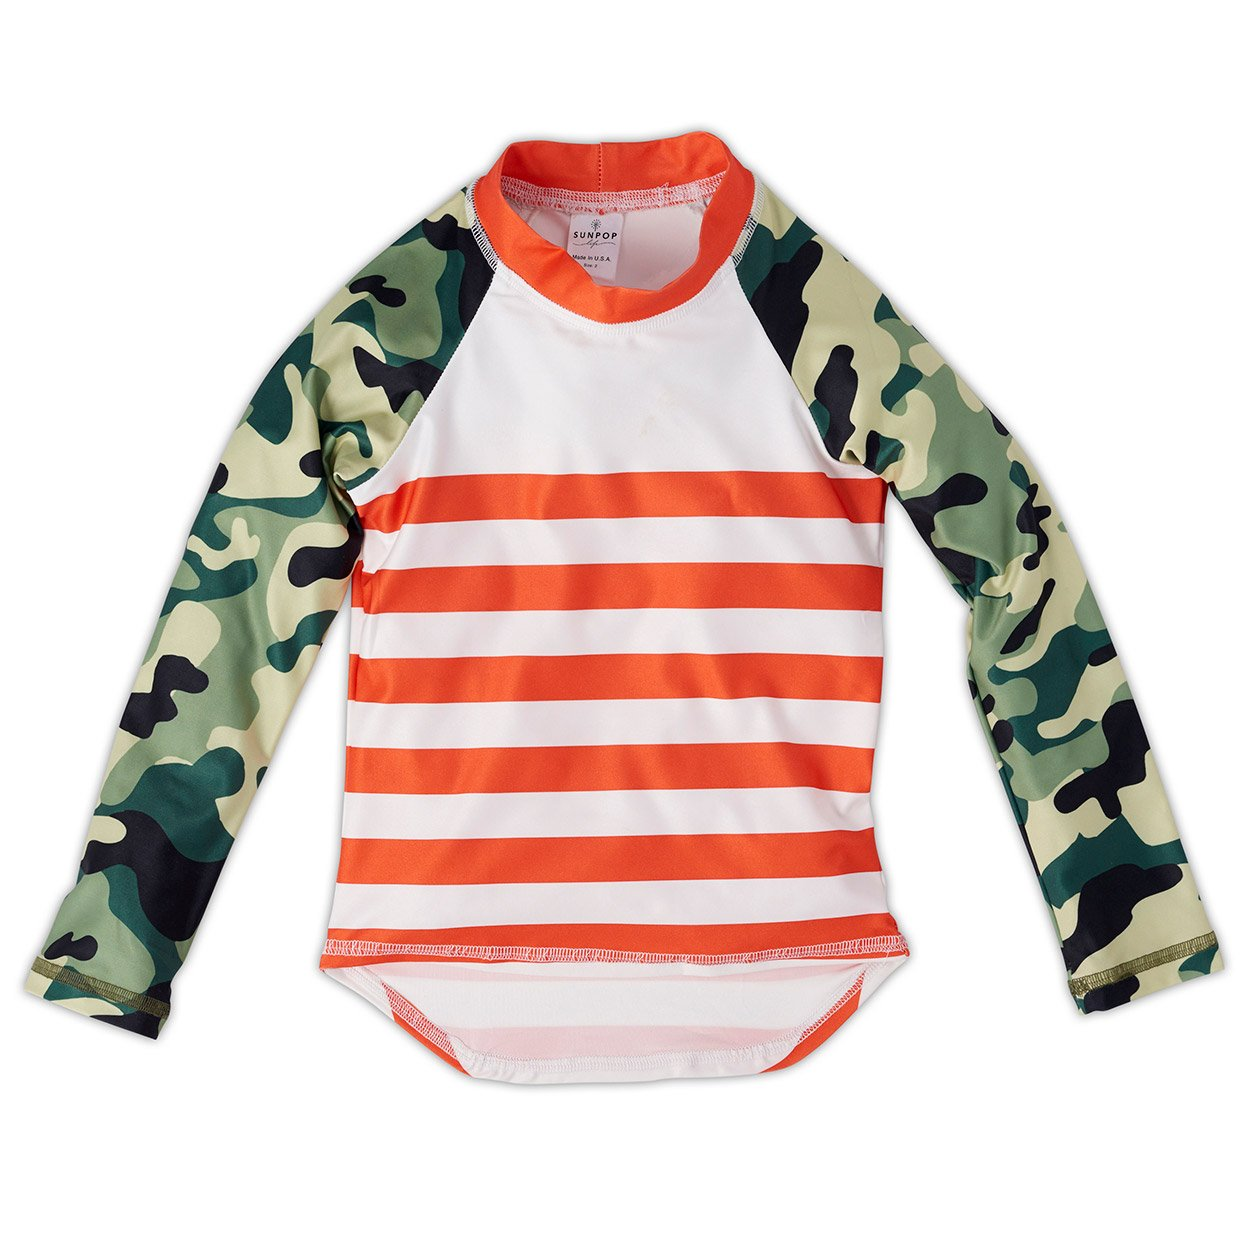 Green Camo Rash Guard Top Unisex Sunpoplife